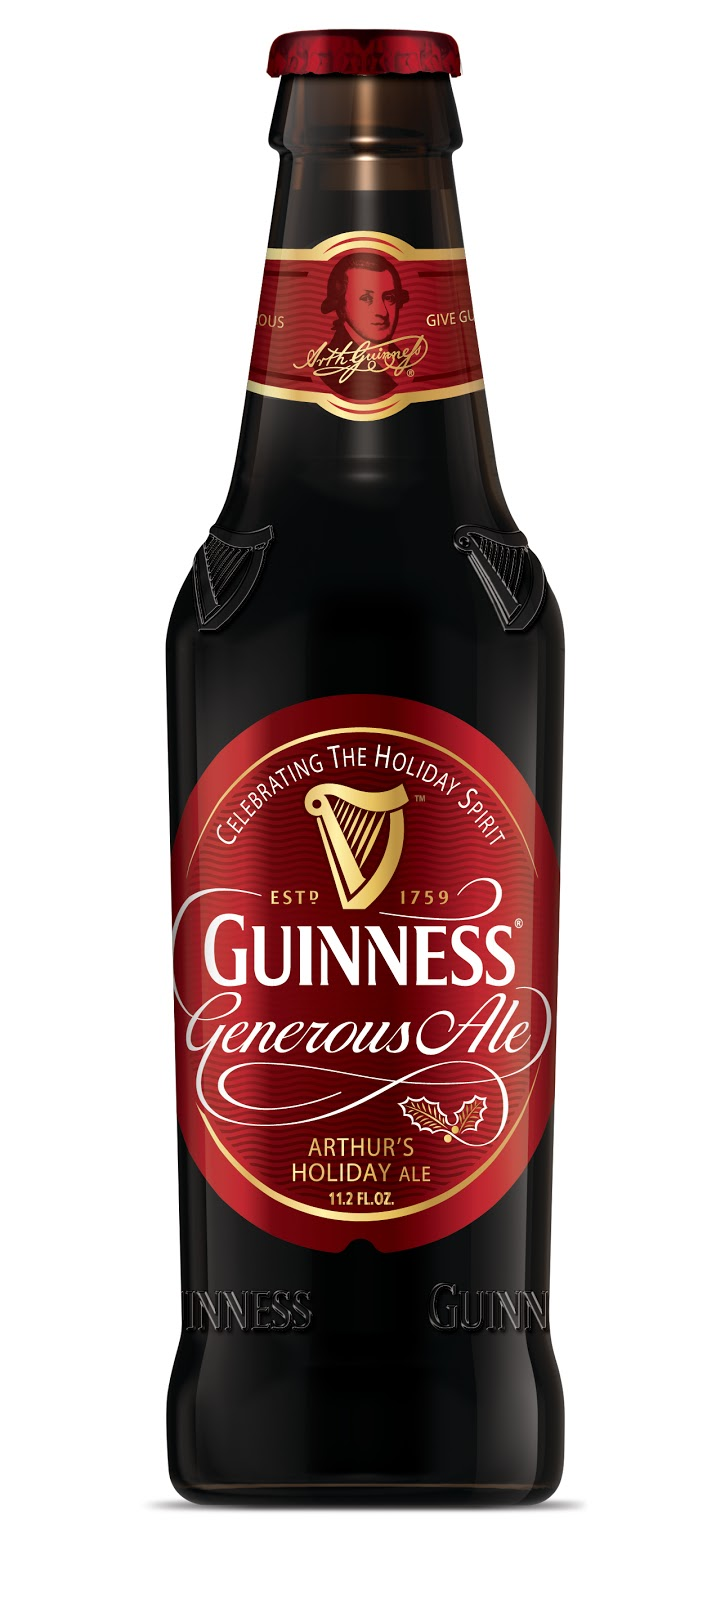 Guinness generous holiday ale new school beer - Guinness beer images ...